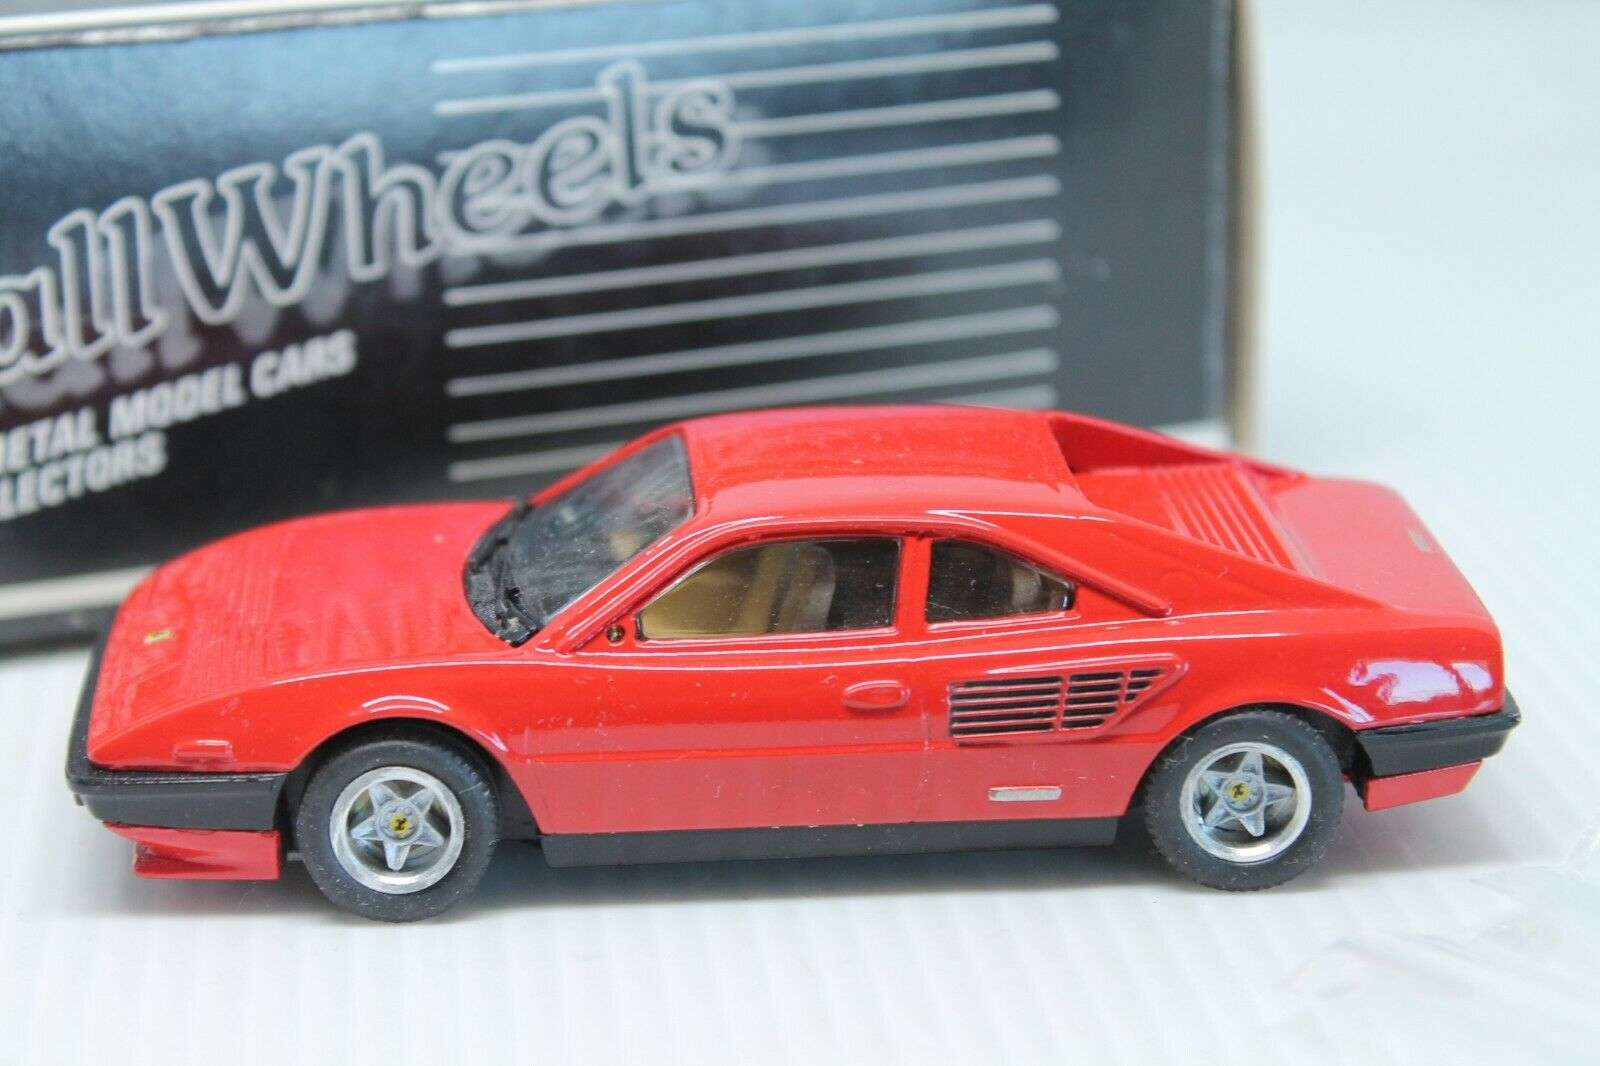 Smallwheels  ferrari mondial  rosso  embalaje original  1 43